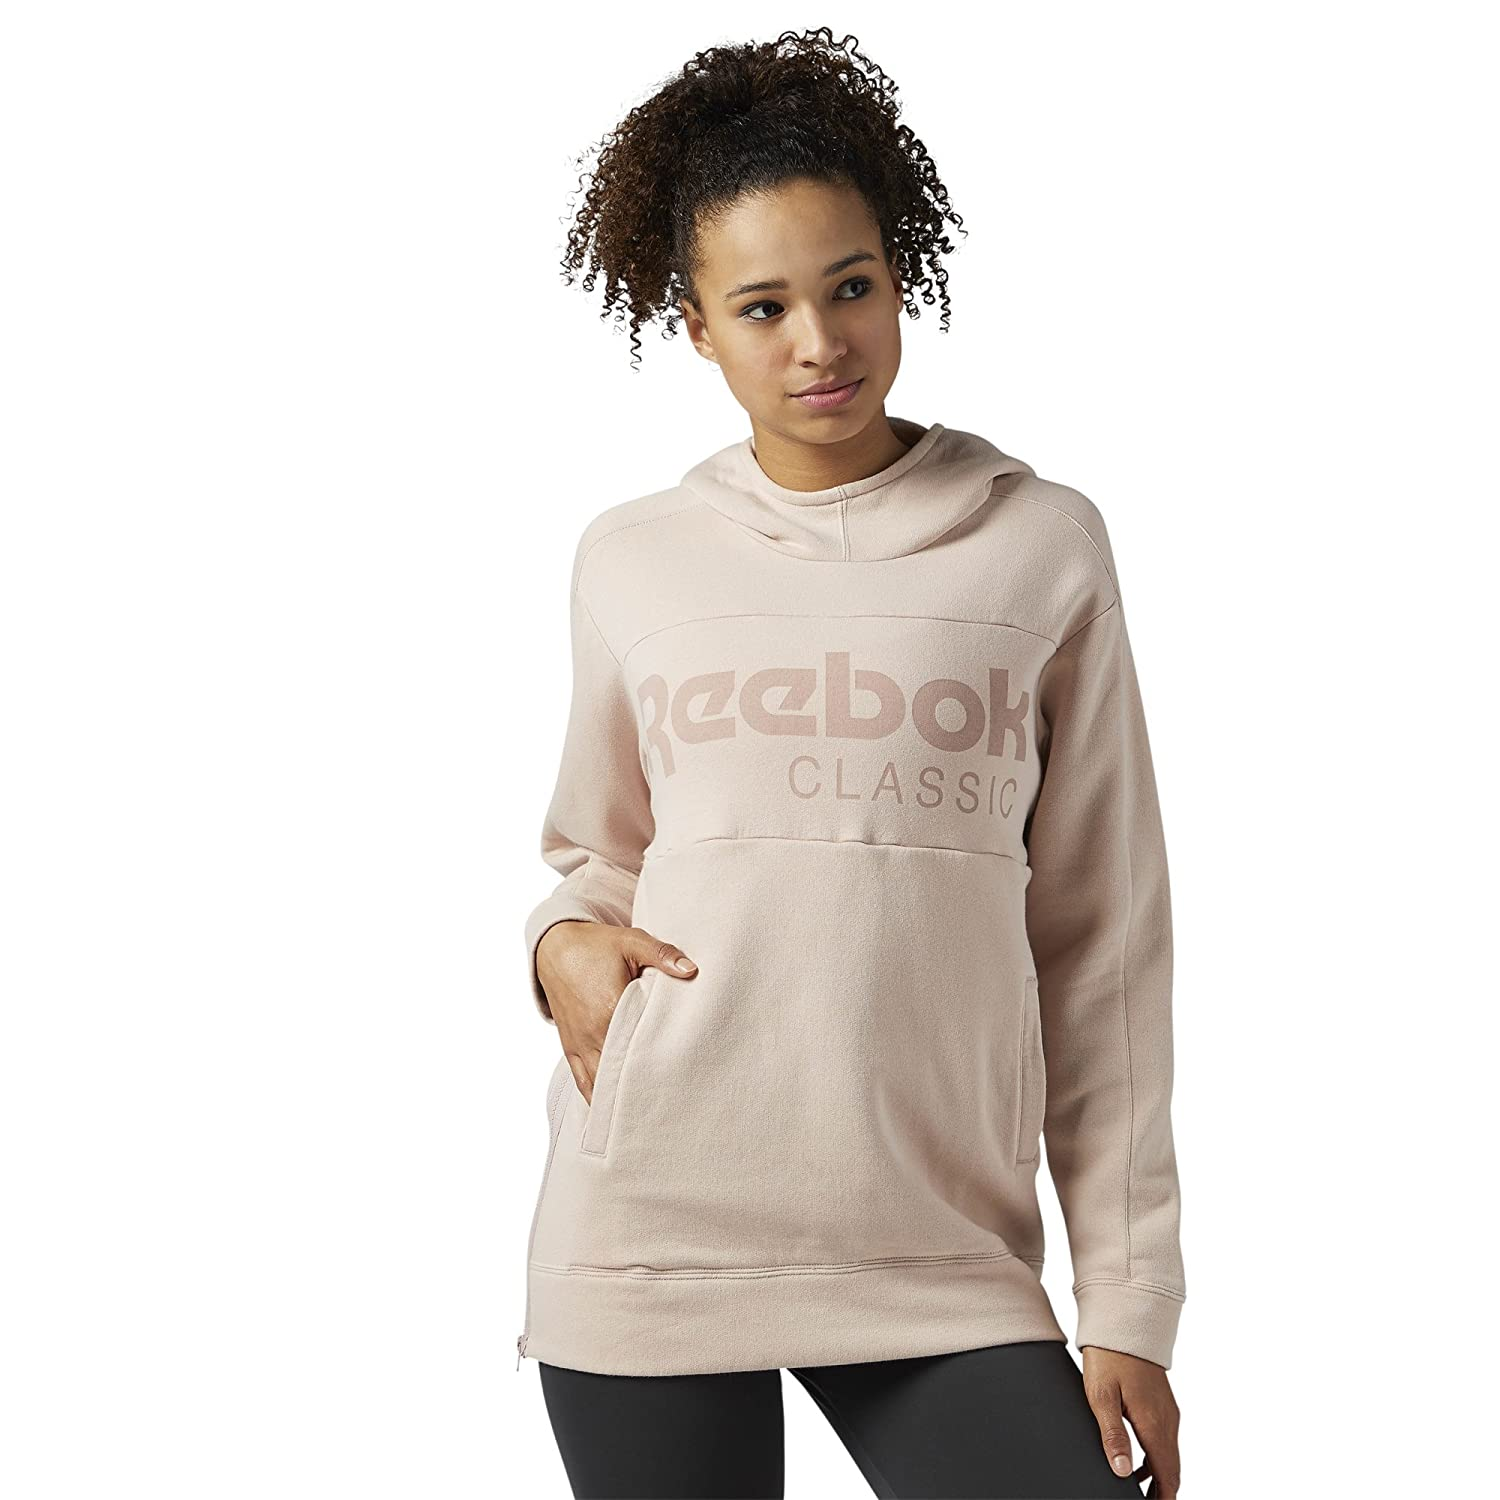 Reebok Classic Women's Foundation Graphic Over The Head Hoody BR7491